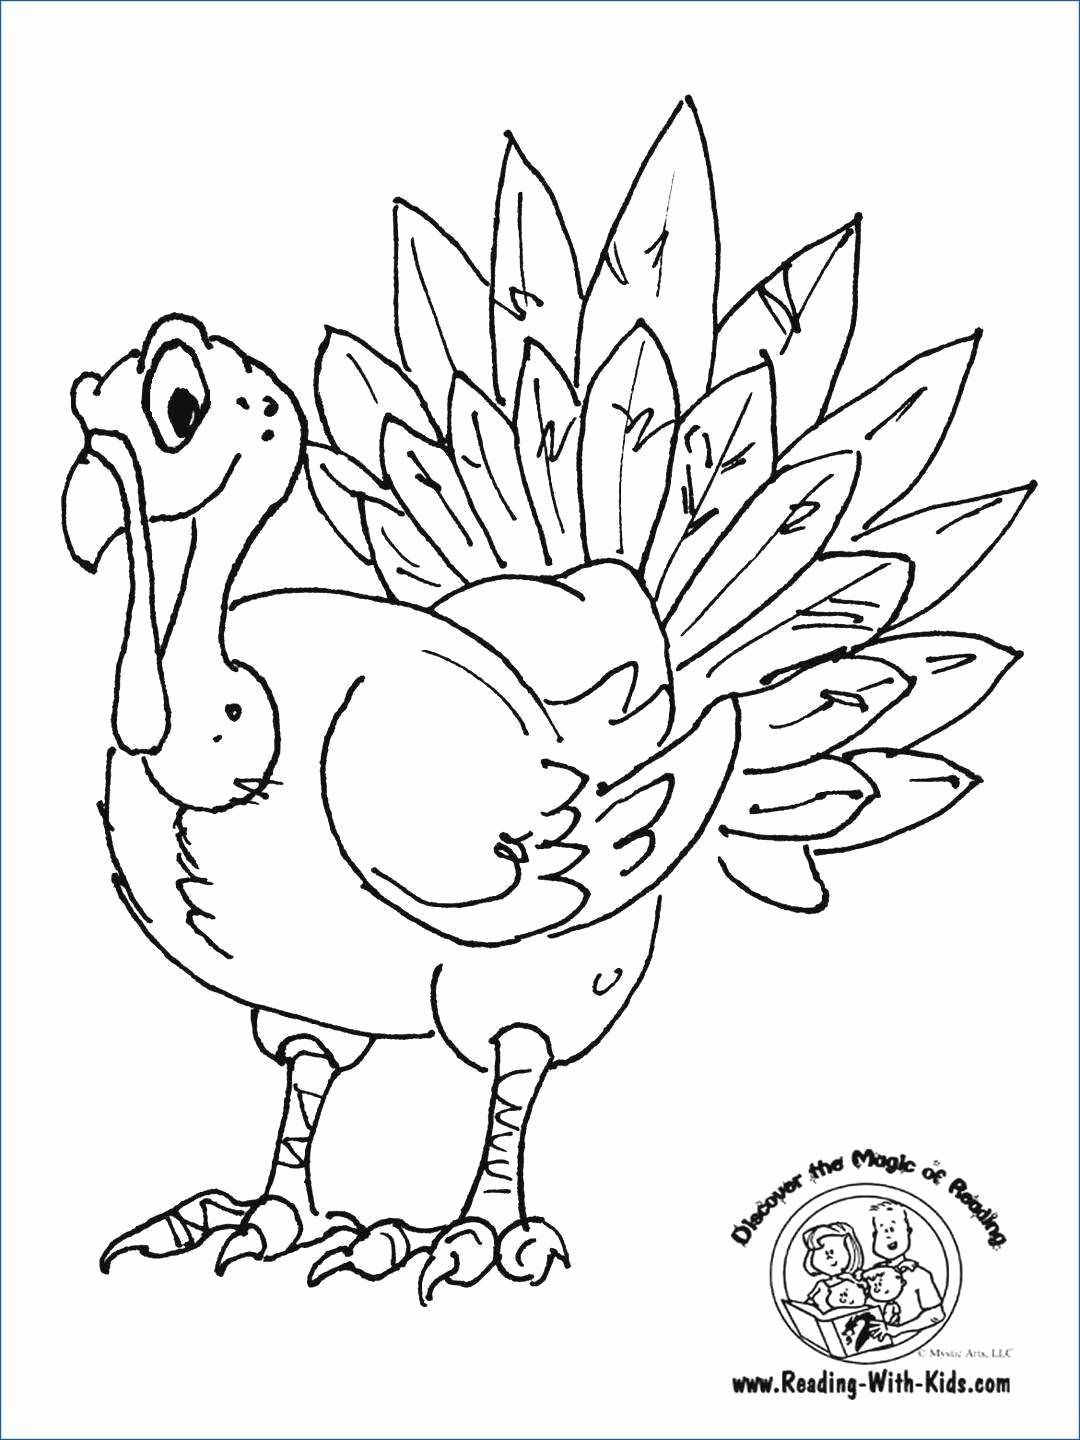 Alphabet Coloring Pages Momjunction Luxury Coloring Book World Turkey Coloringages Forres Turkey Coloring Pages Thanksgiving Coloring Pages Fall Coloring Pages